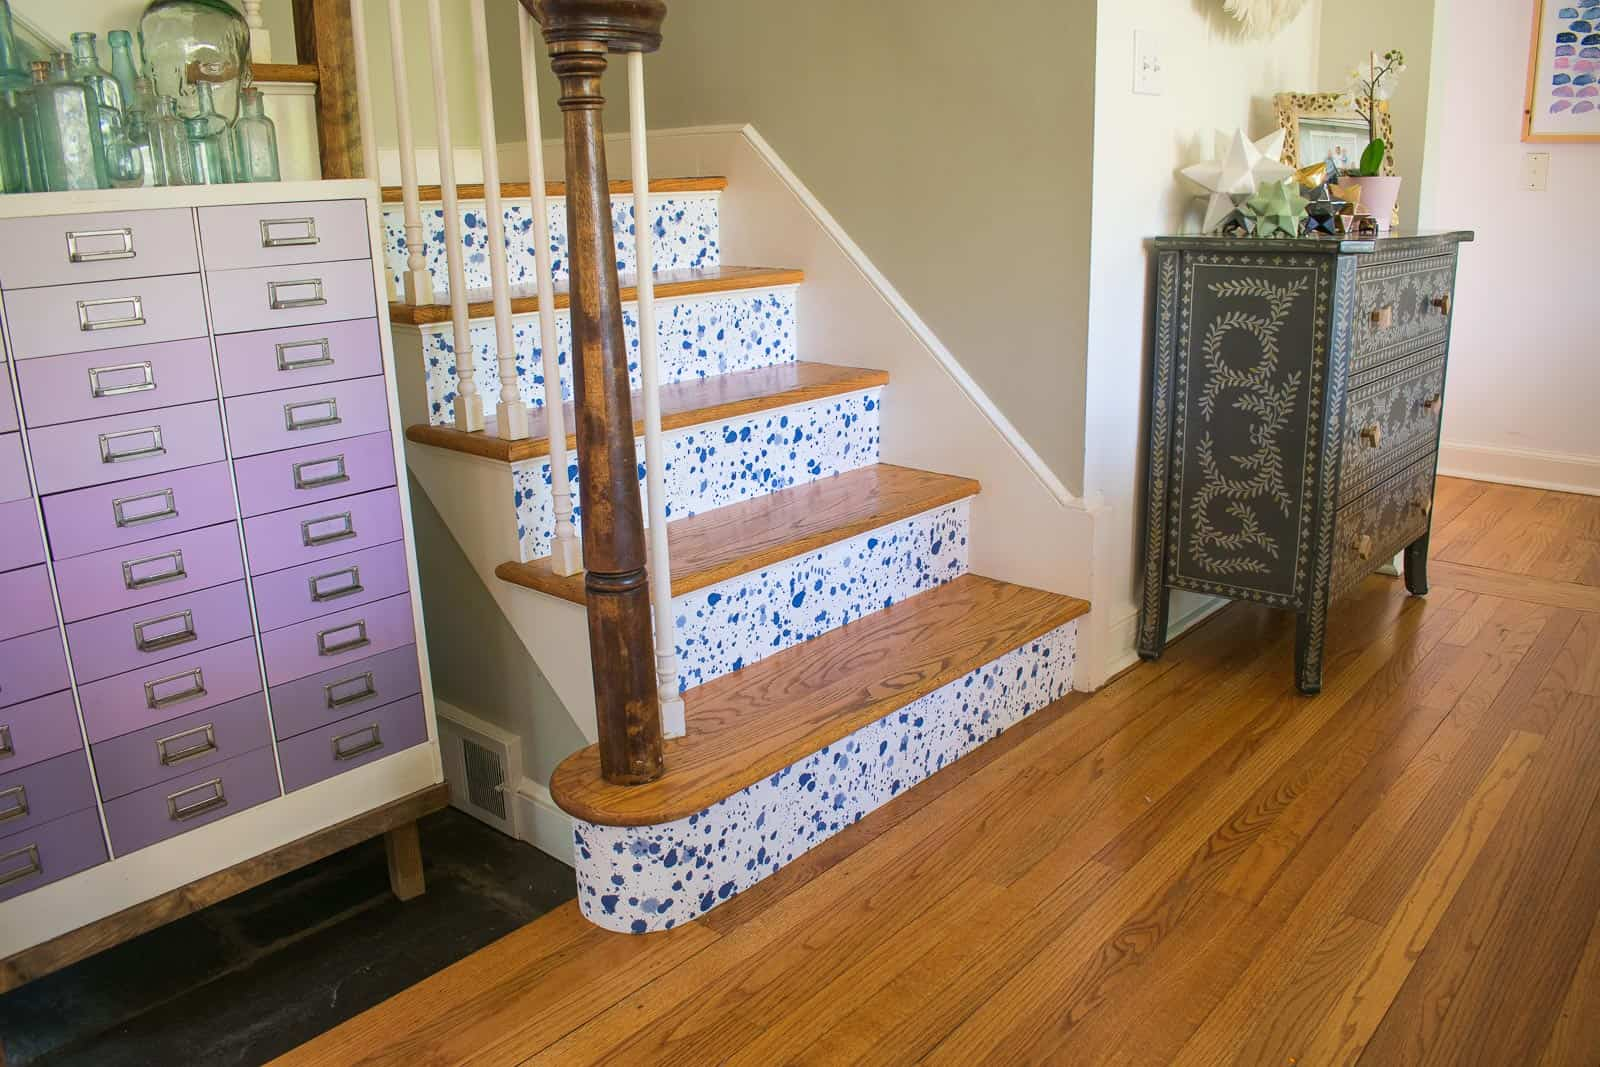 decorative staircase risers with wallpaper